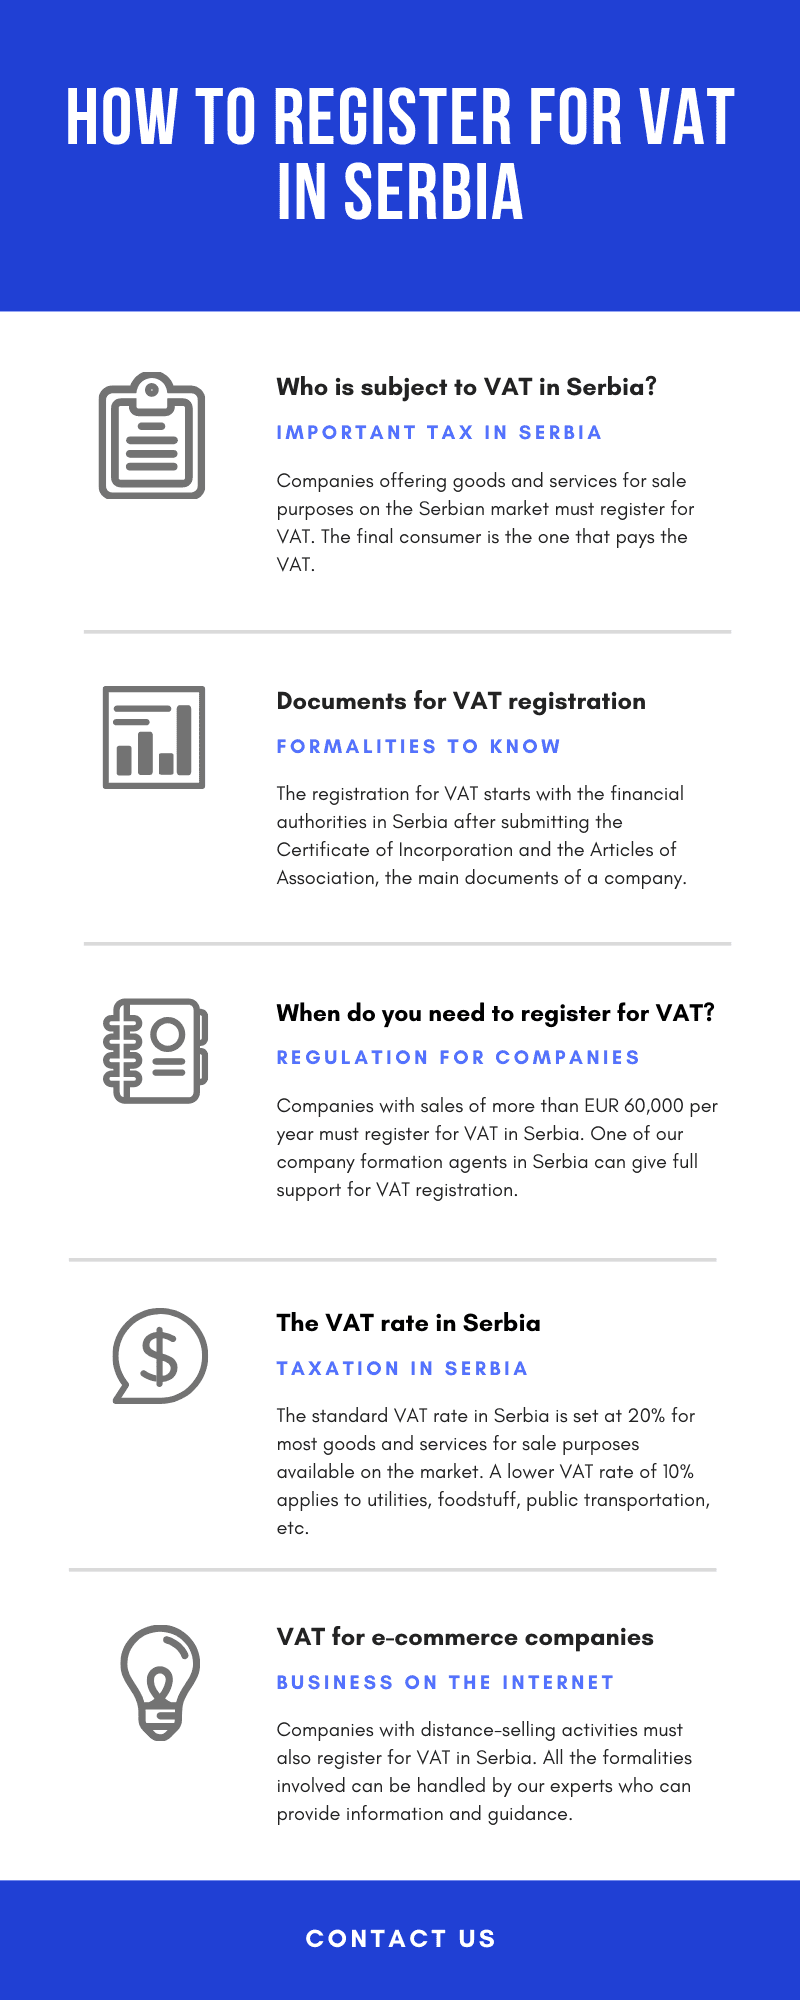 How to register for VAT in Serbia1.png